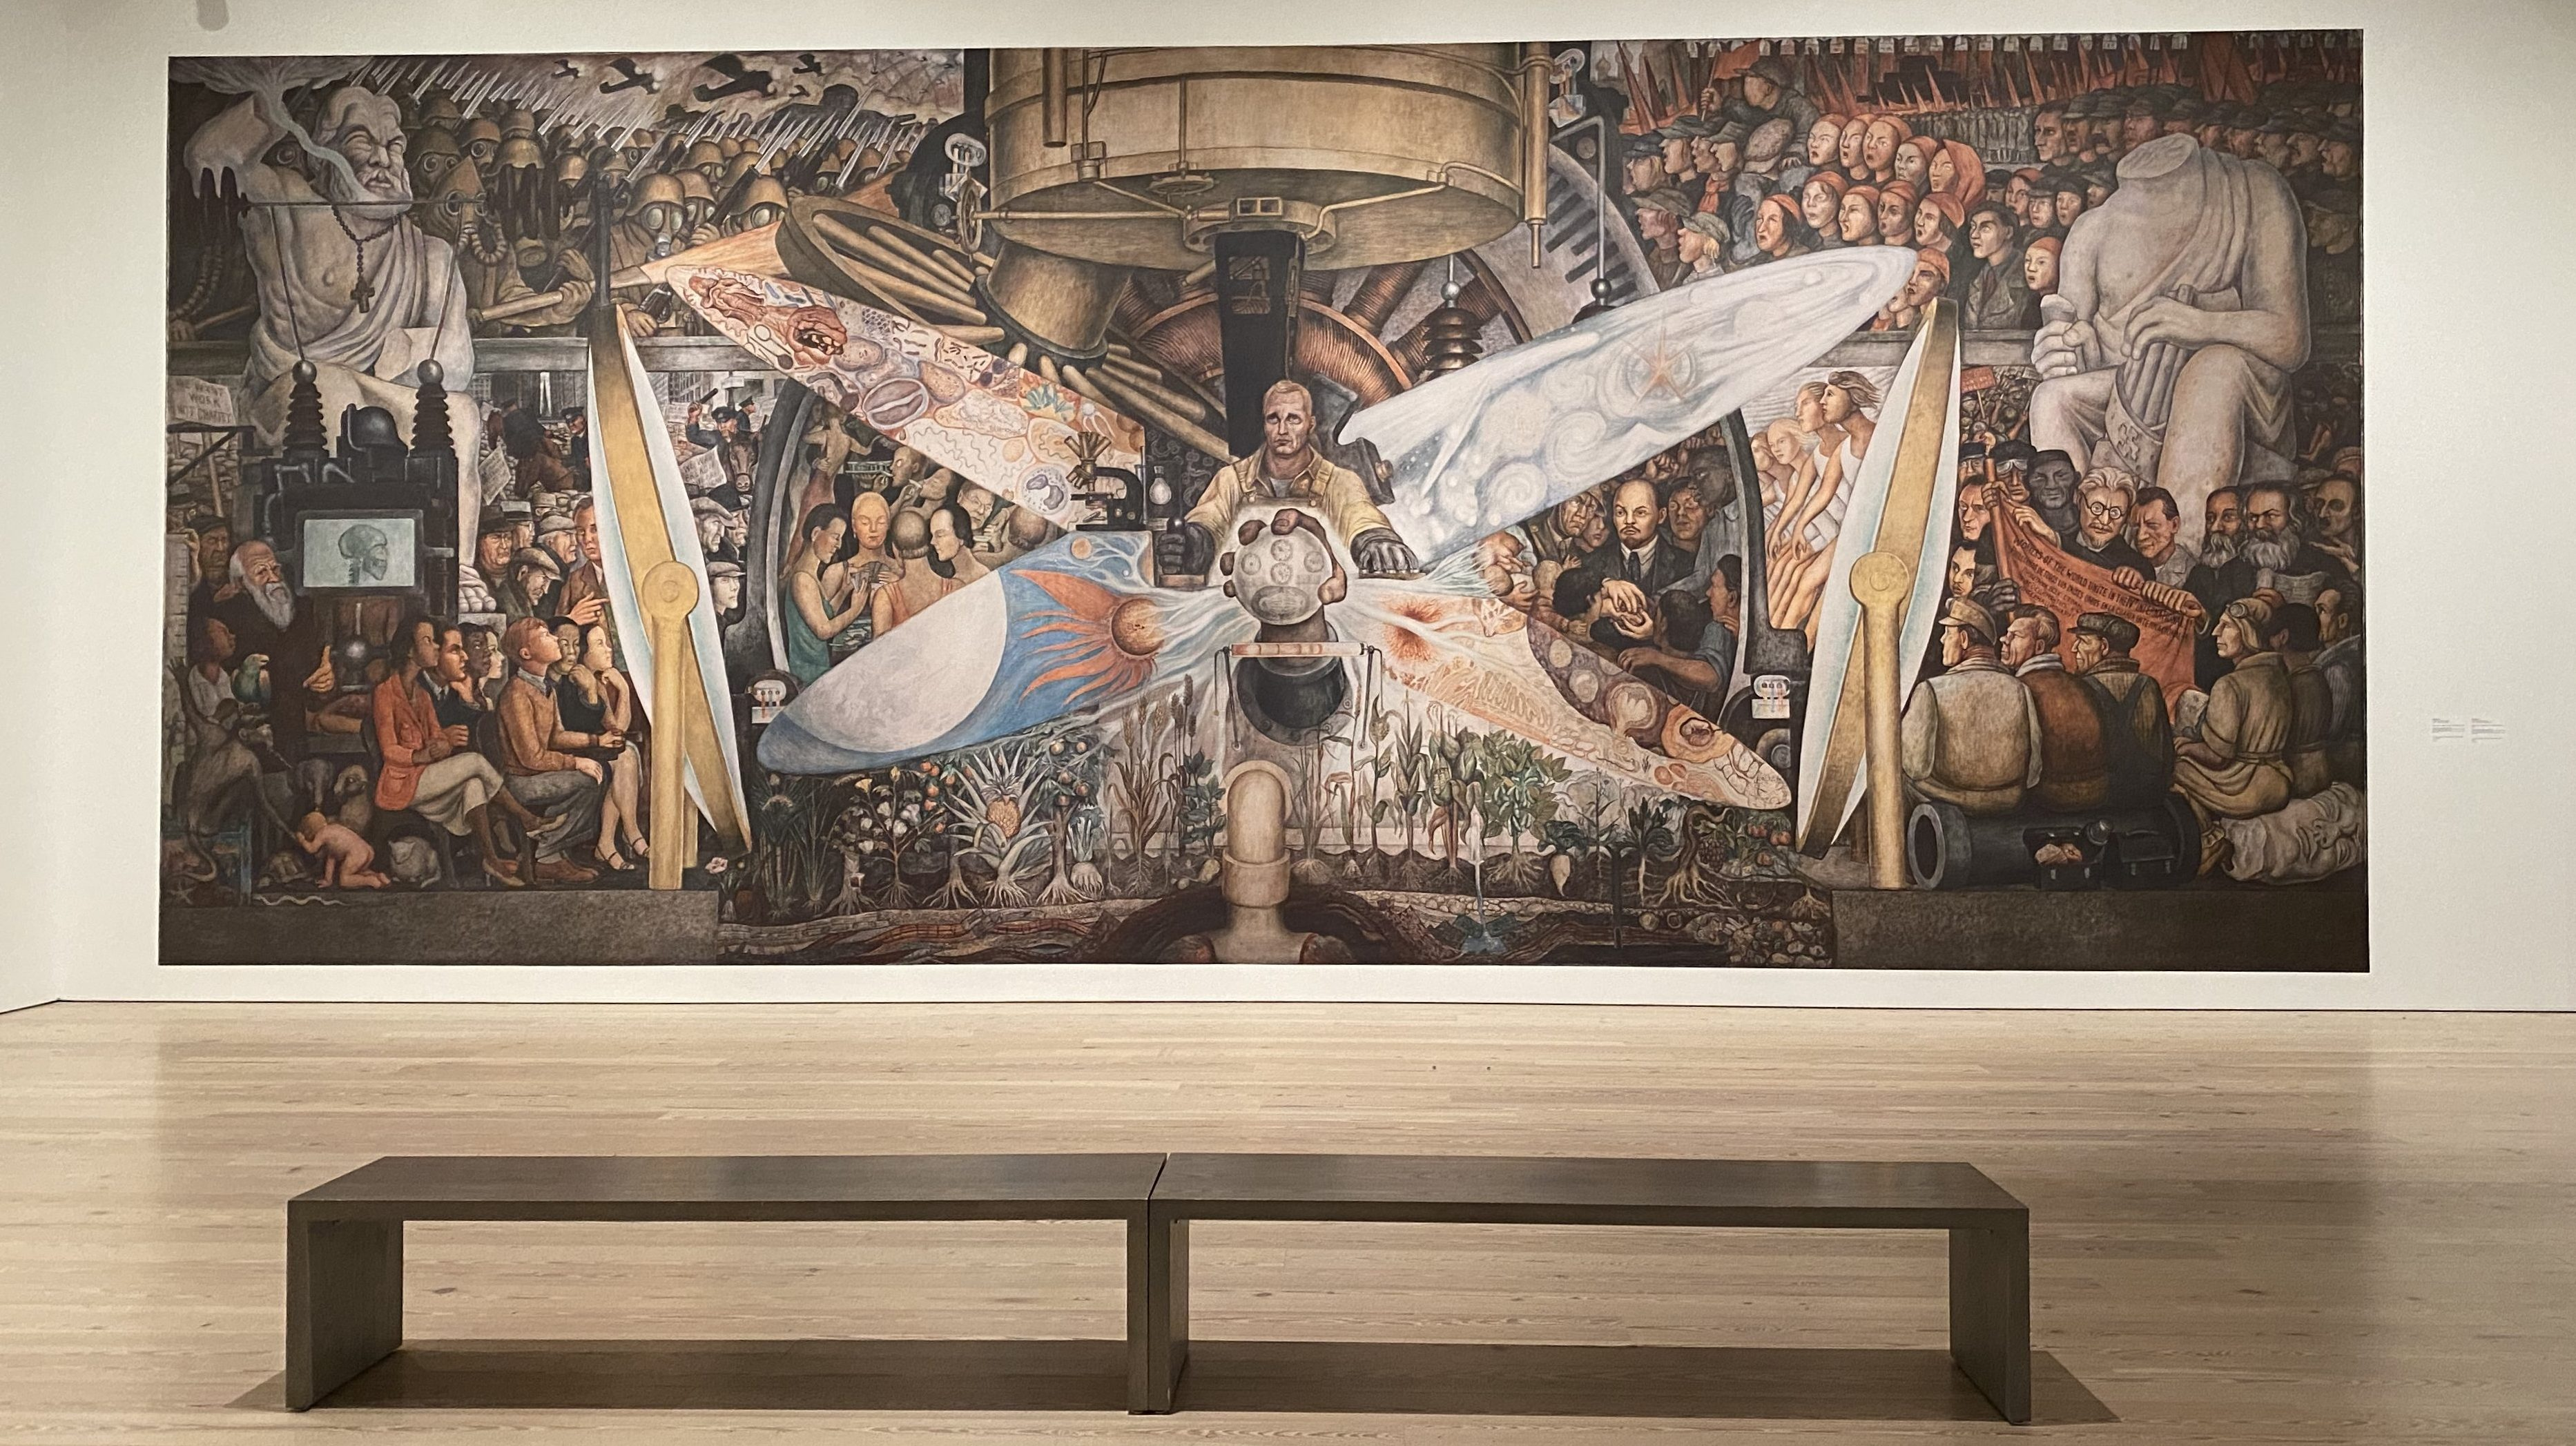 Lead image: Diego Rivera mural for Rockefeller Center reproduced at the Whitney Museum